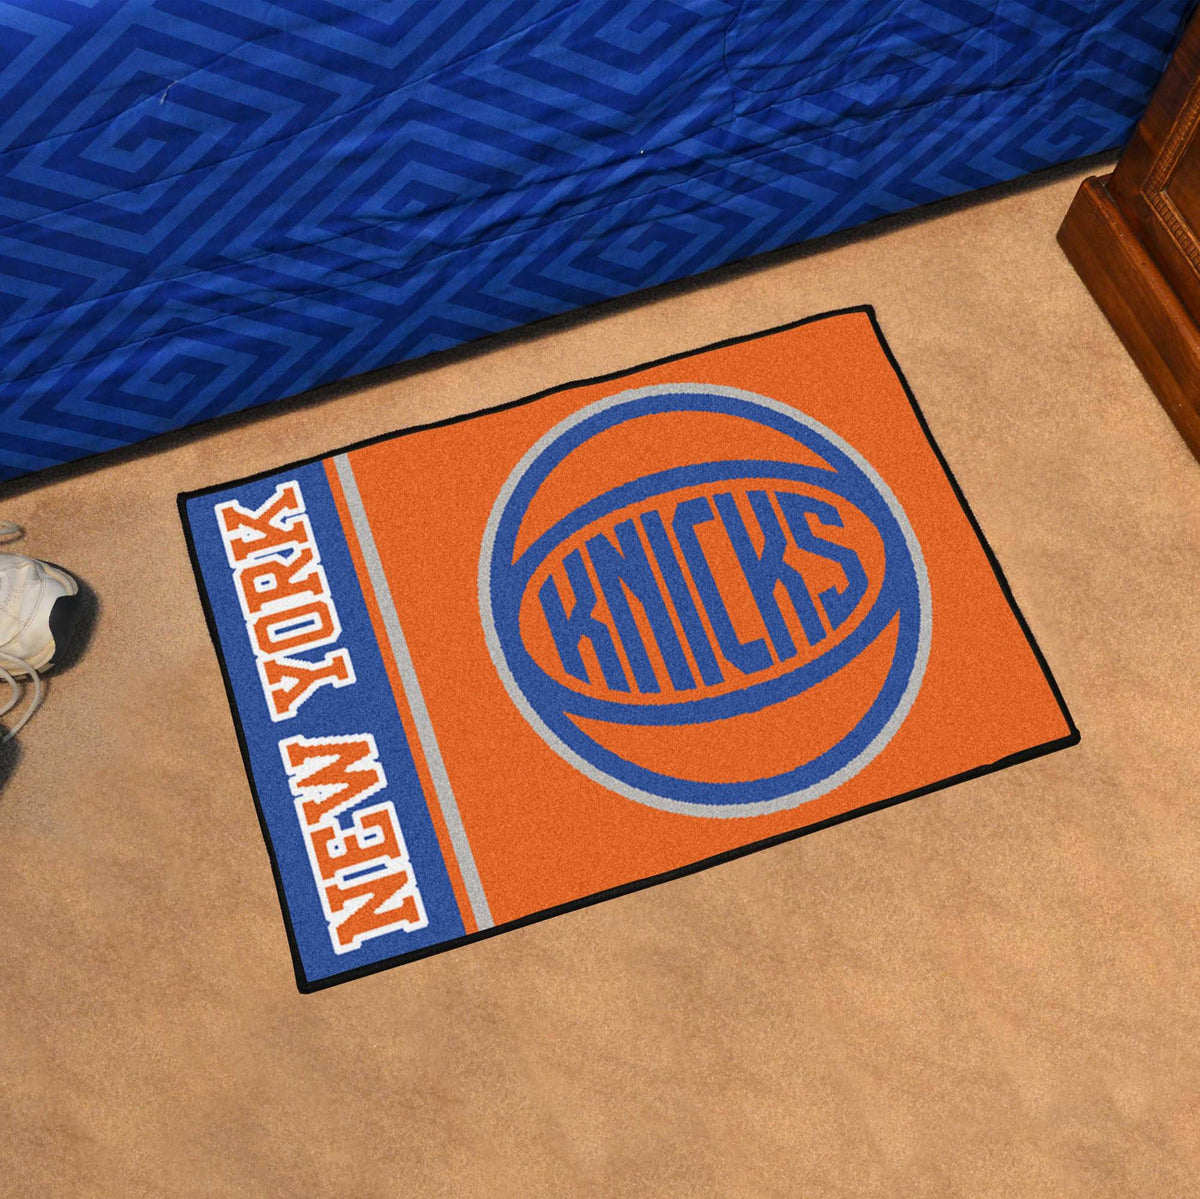 NBA - Uniform Starter Mat NBA Mats, Rectangular Mats, Uniform Starter Mat, NBA, Home Fan Mats New York Knicks